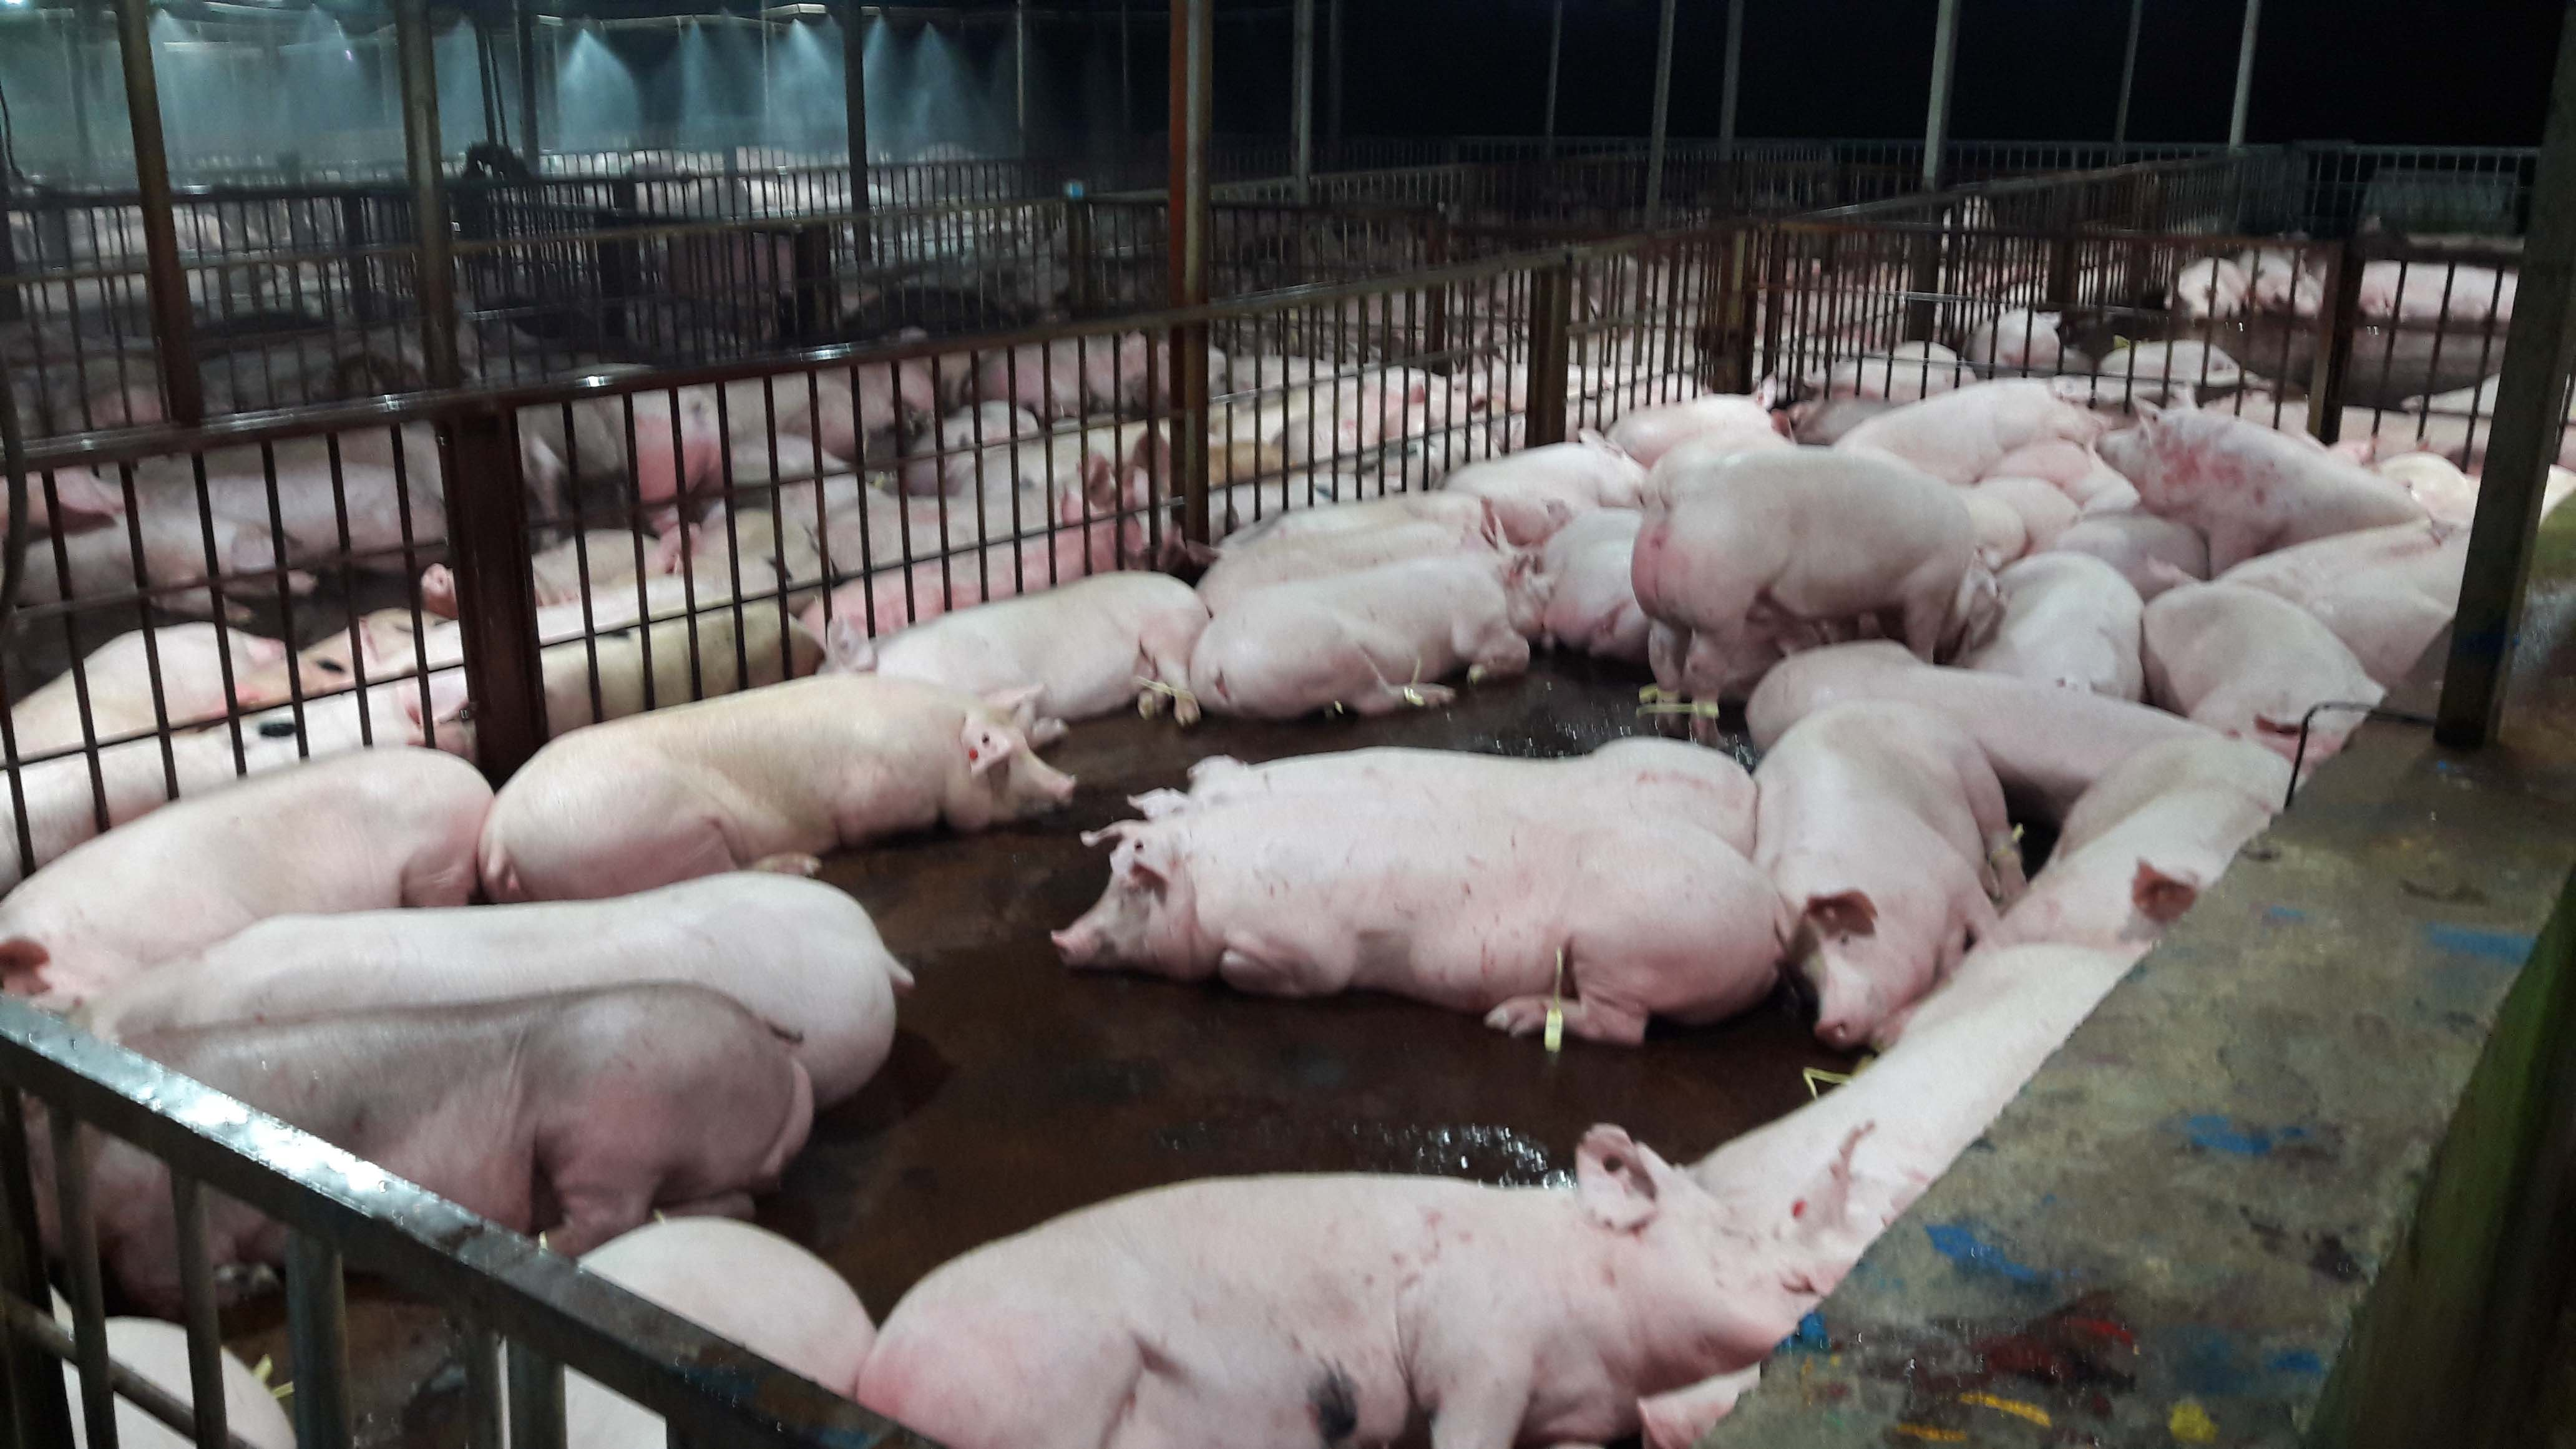 Vietnam refuses to ban the use of sedatives on pigs despite widespread abuse